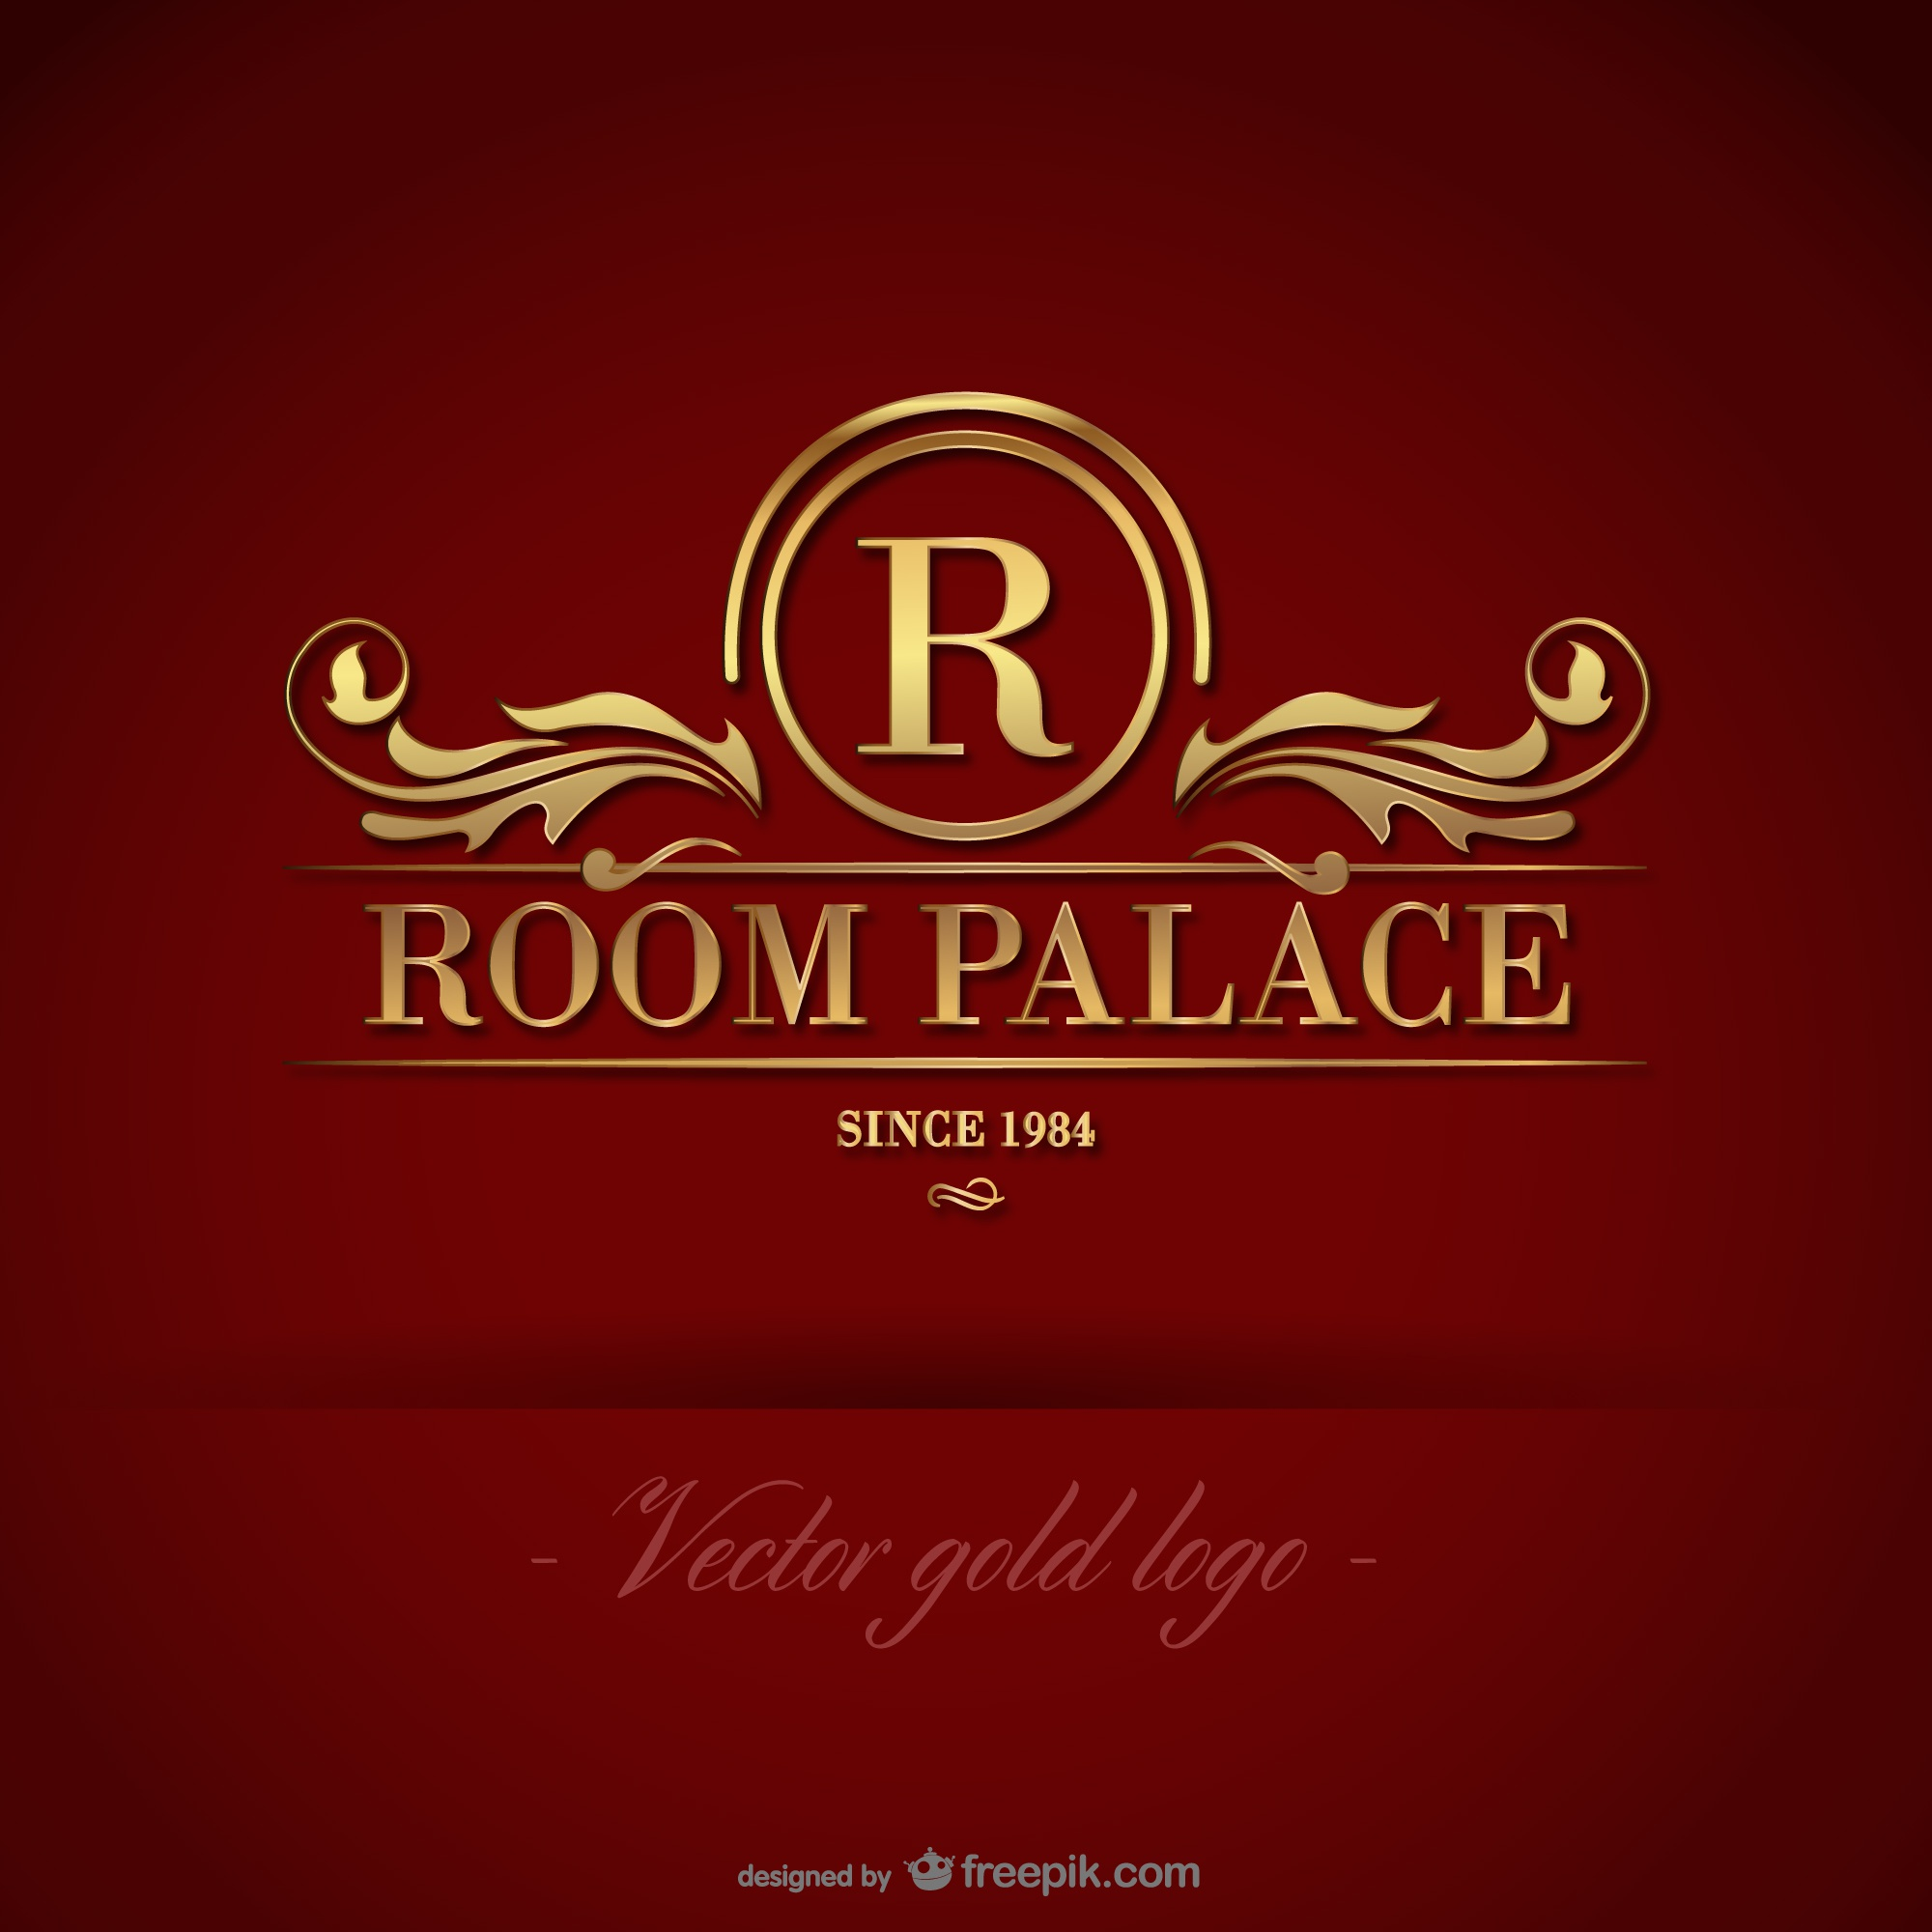 Golden room palace logo